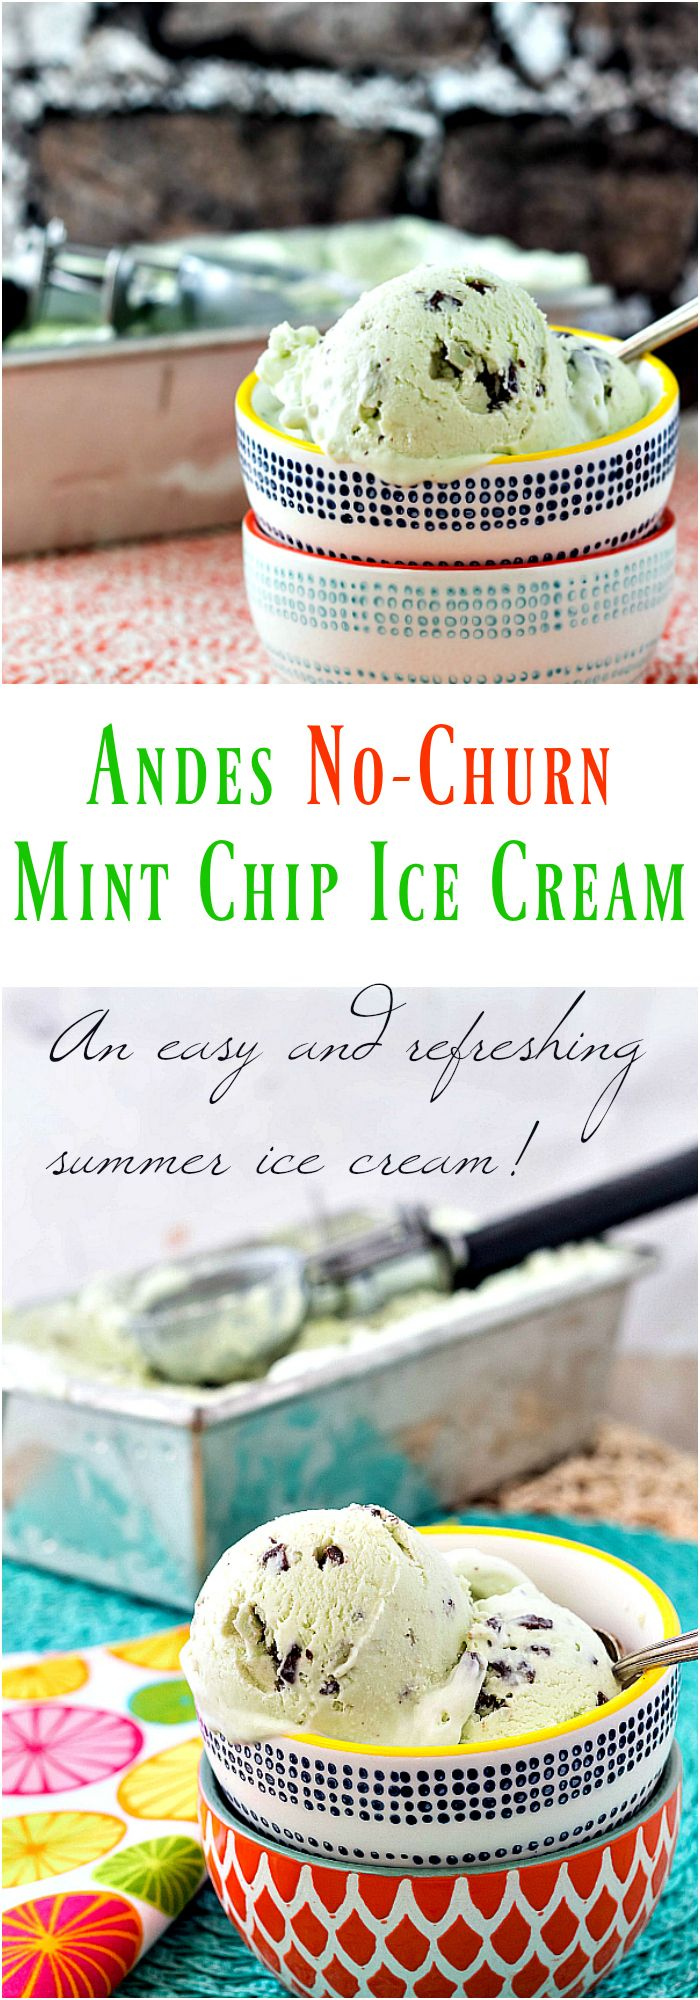 It took me a long time to jump on the no-churn bandwagon, but now that I'm here, I am so happy! This Andes Mint Chip Ice Cream (No-Churn) recipe is smooth, creamy, cool, and the perfect amount of minty for a hot summer's day! It only takes about 5 minutes to whip up, so make some and it will be ready for you the next day! | pastrychefonline.com